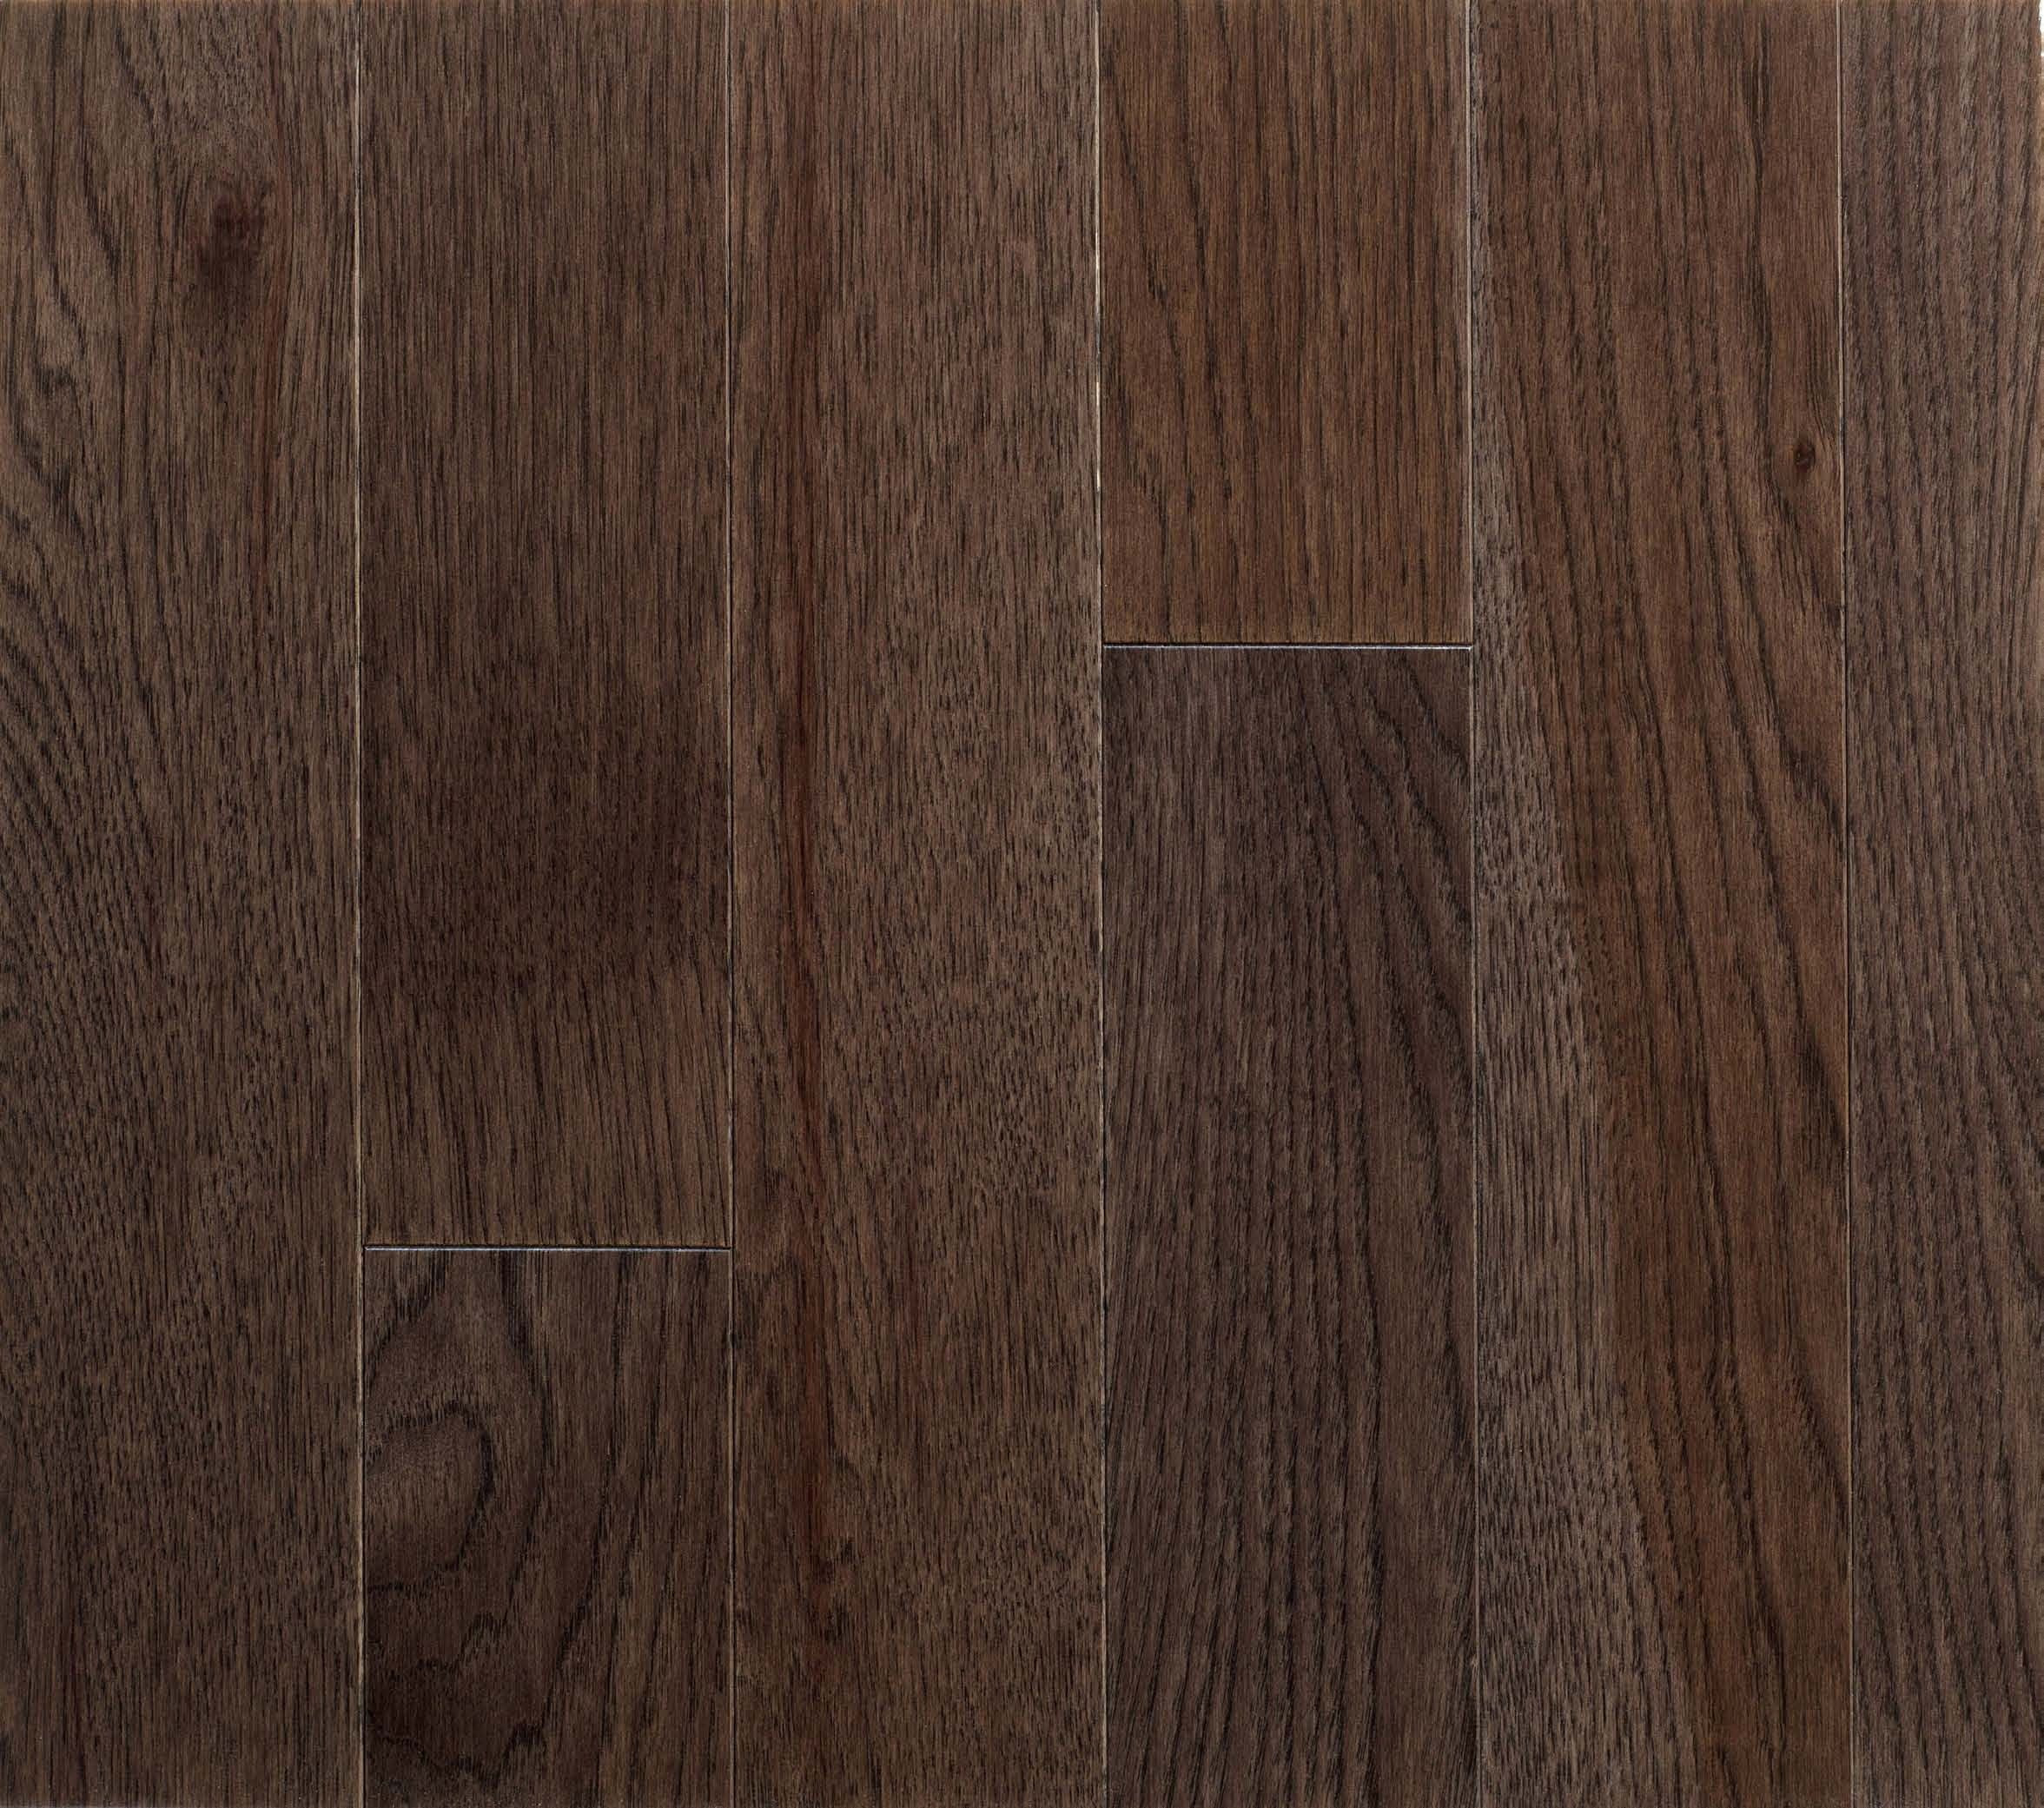 Hickory Hardwood Flooring Lowes Of Hickory Mesquite by Vintage Hardwood Flooring Hardwood Throughout Hickory Mesquite by Vintage Hardwood Flooring Hardwood Hardwoodflooring Hickory Pecan